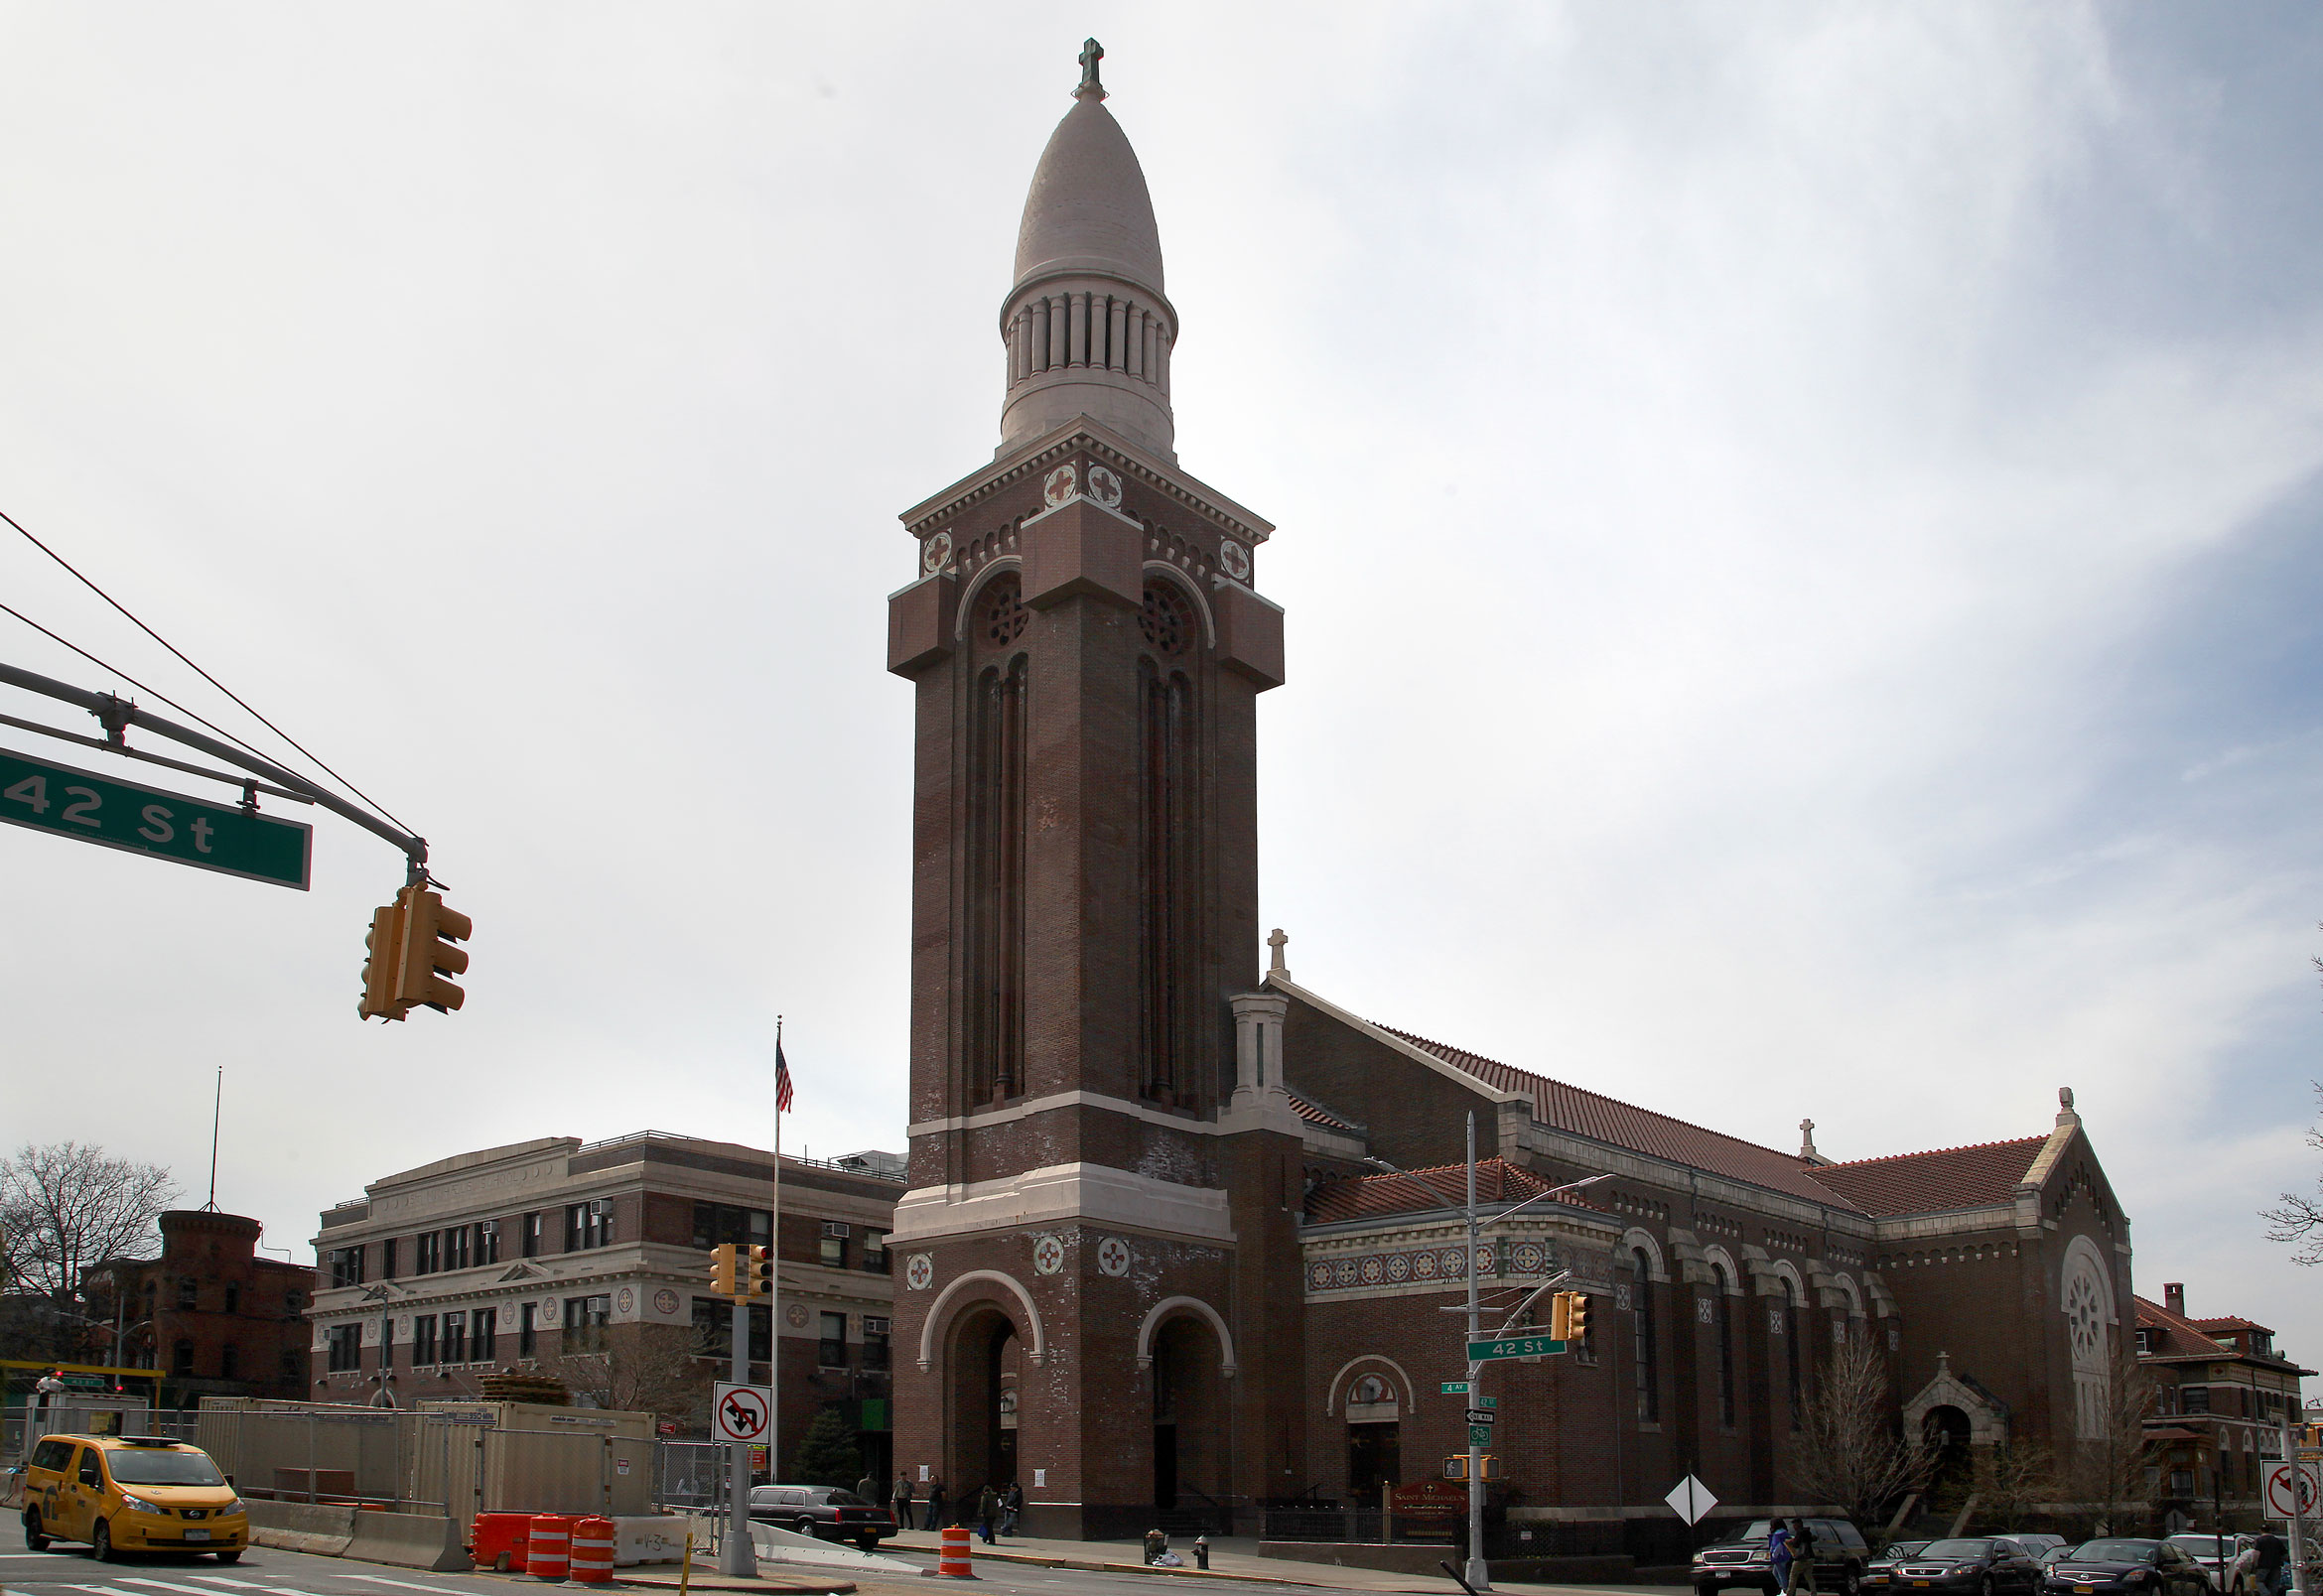 St. Michael's Church, on Fourth Avenue in the heart of Sunset Park. The community solar project could expand to rooftops across the neighborhood. Photo by Amy Howden-Chapman